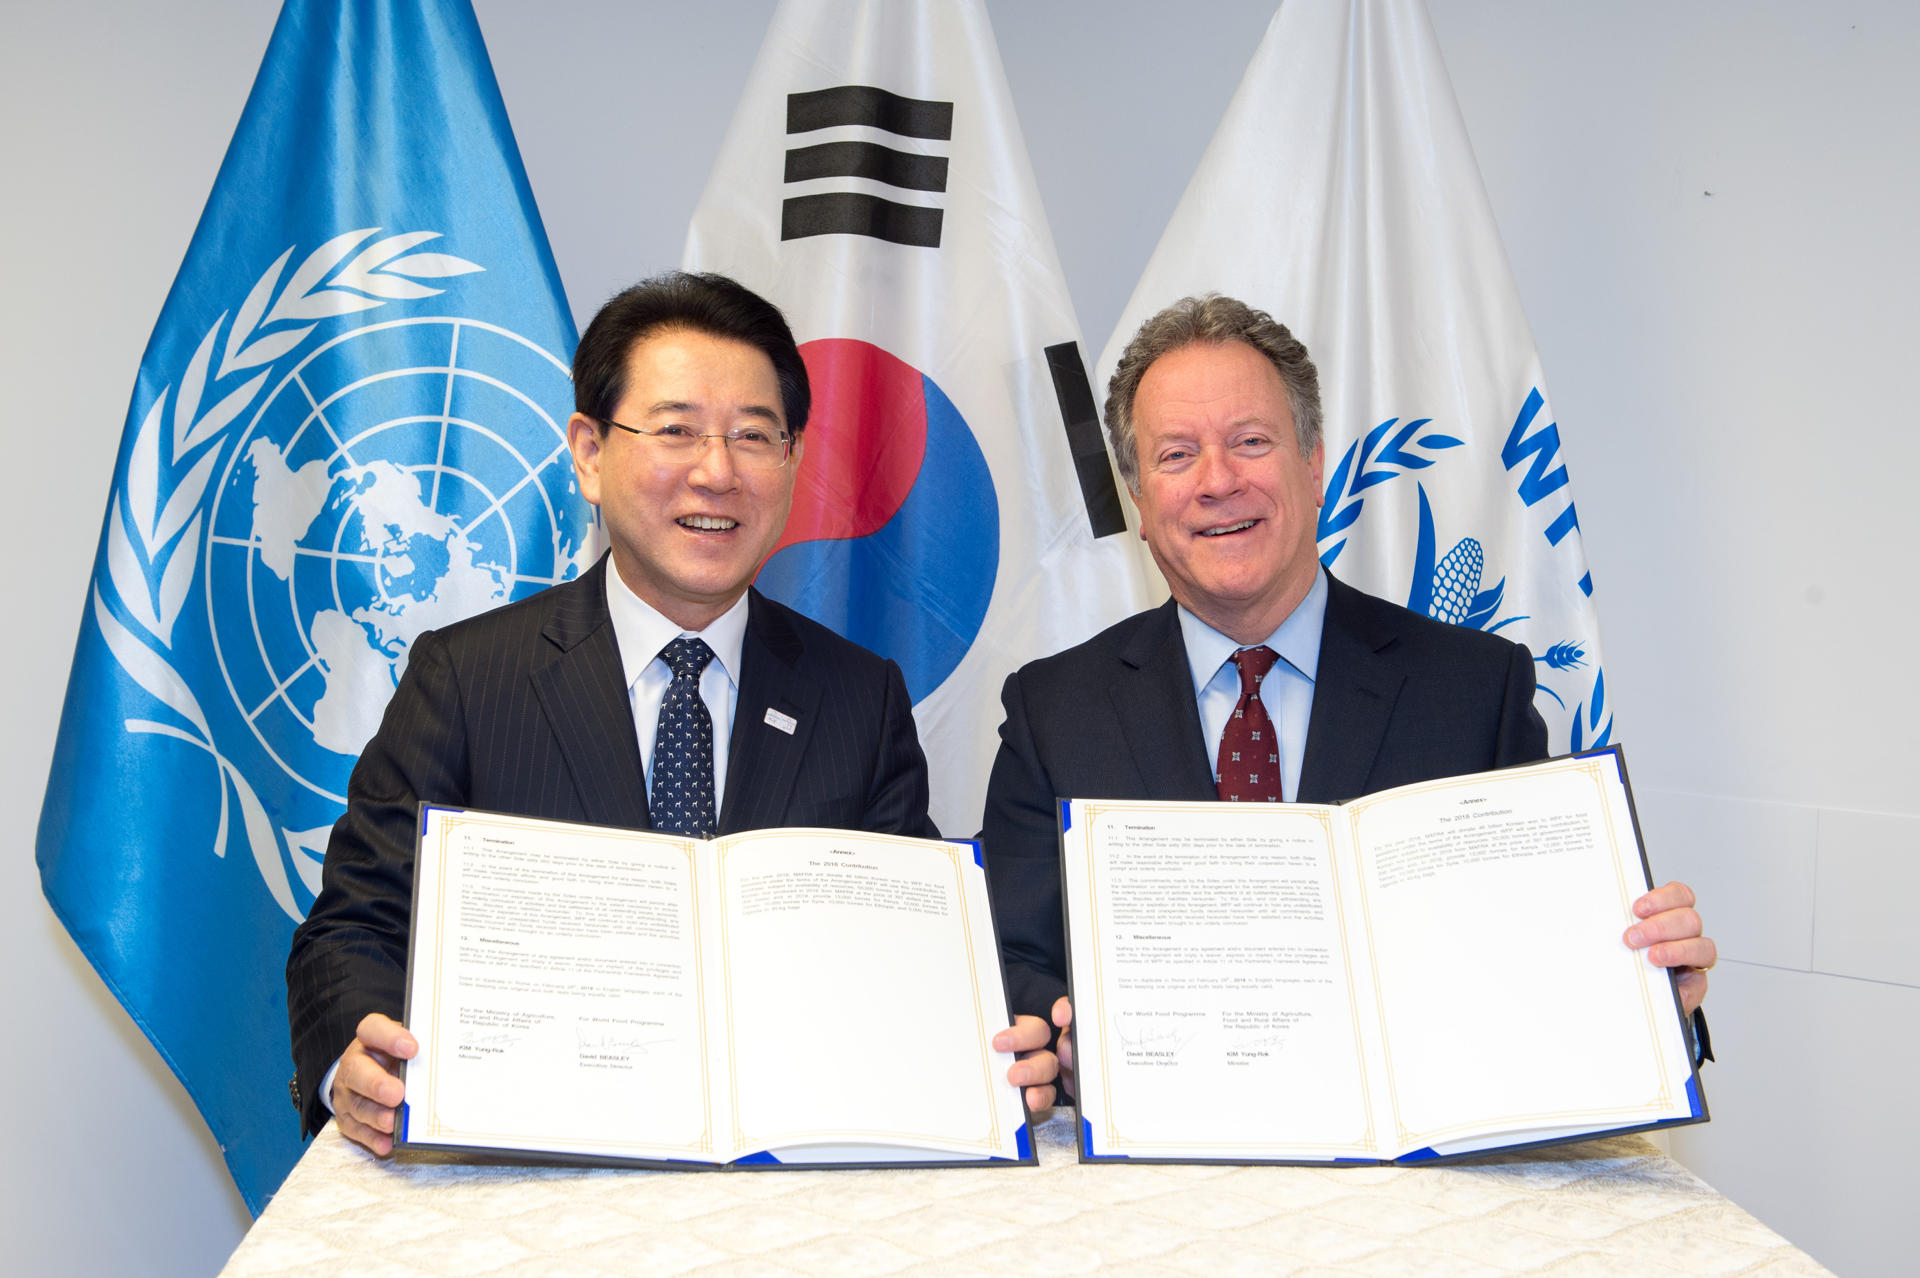 From recipient to donor: Republic of Korea makes its largest ever contribution to WFP